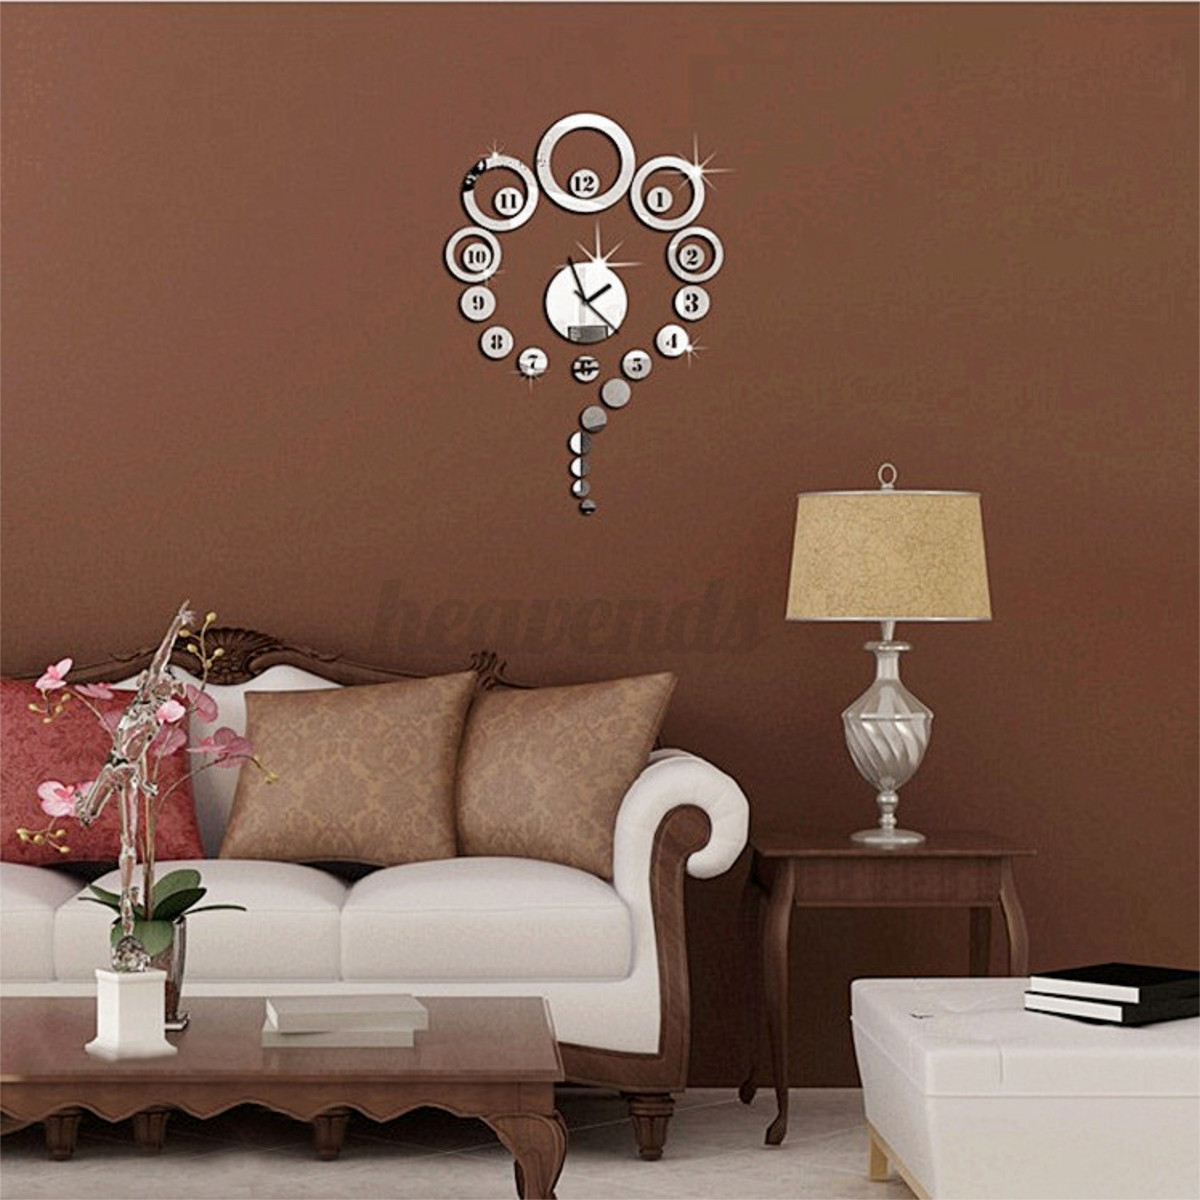 horloge pendule murale diy 3d acrylique miroir maison moderne d co autocollant ebay. Black Bedroom Furniture Sets. Home Design Ideas